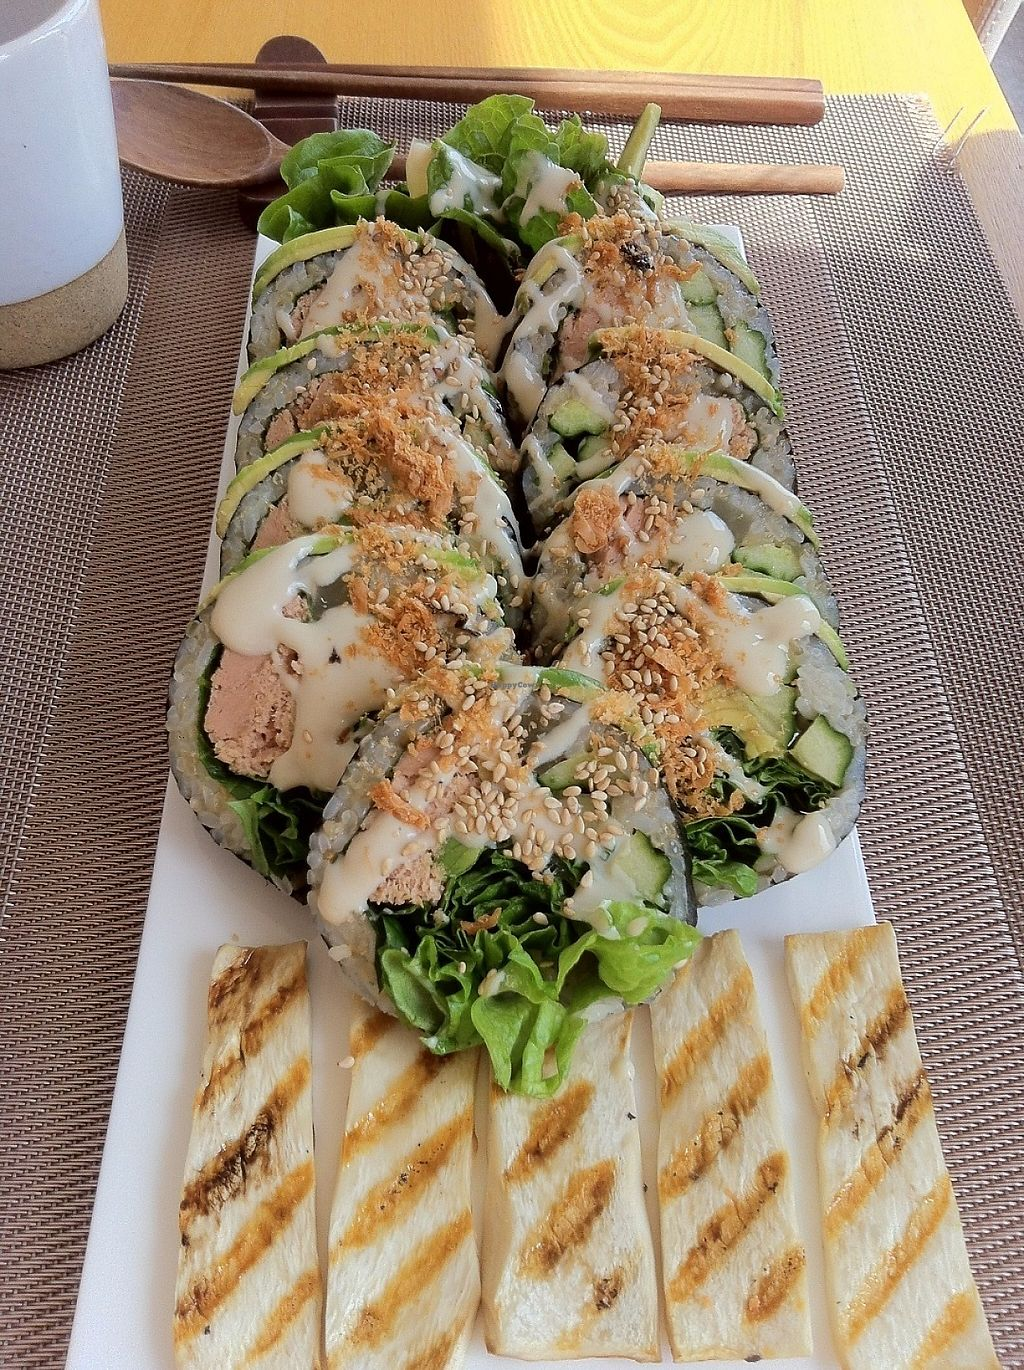 """Photo of Vegenarang  by <a href=""""/members/profile/sujata"""">sujata</a> <br/>Avocado roll <br/> June 3, 2017  - <a href='/contact/abuse/image/75142/265230'>Report</a>"""